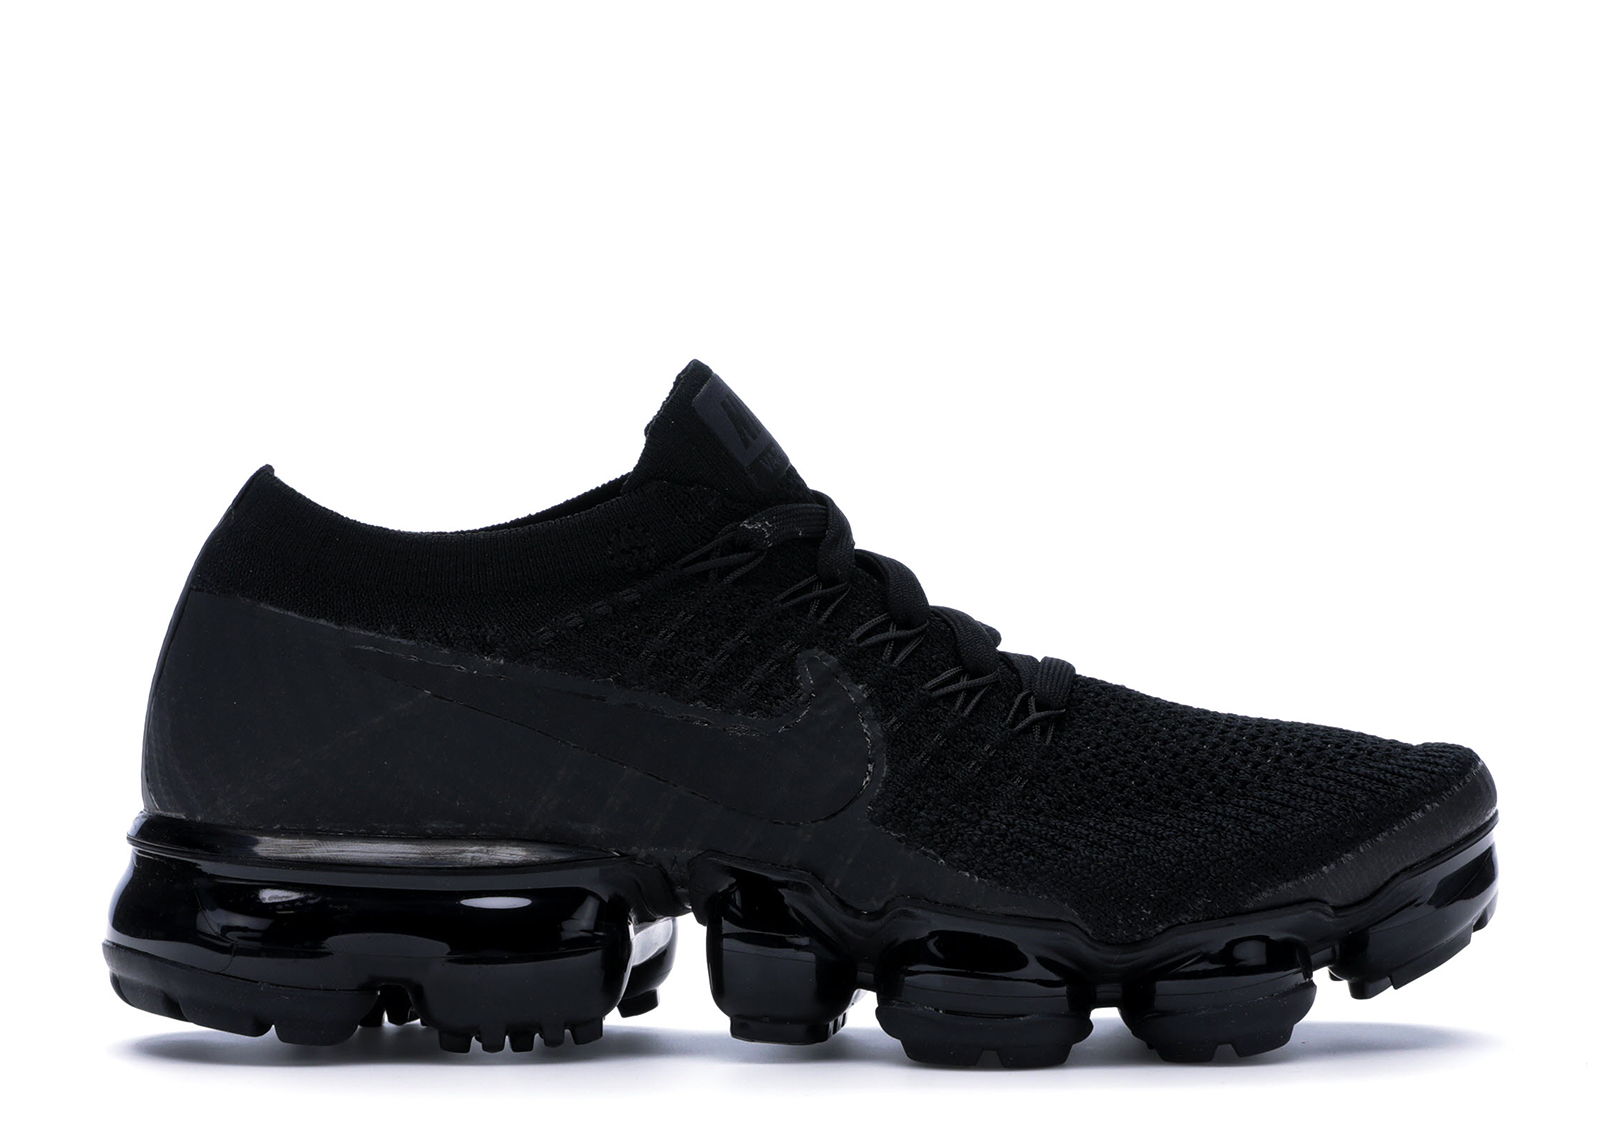 check out e7939 dc356 Air Vapormax Triple Noir (W) in Black/Black-Anthracite-White